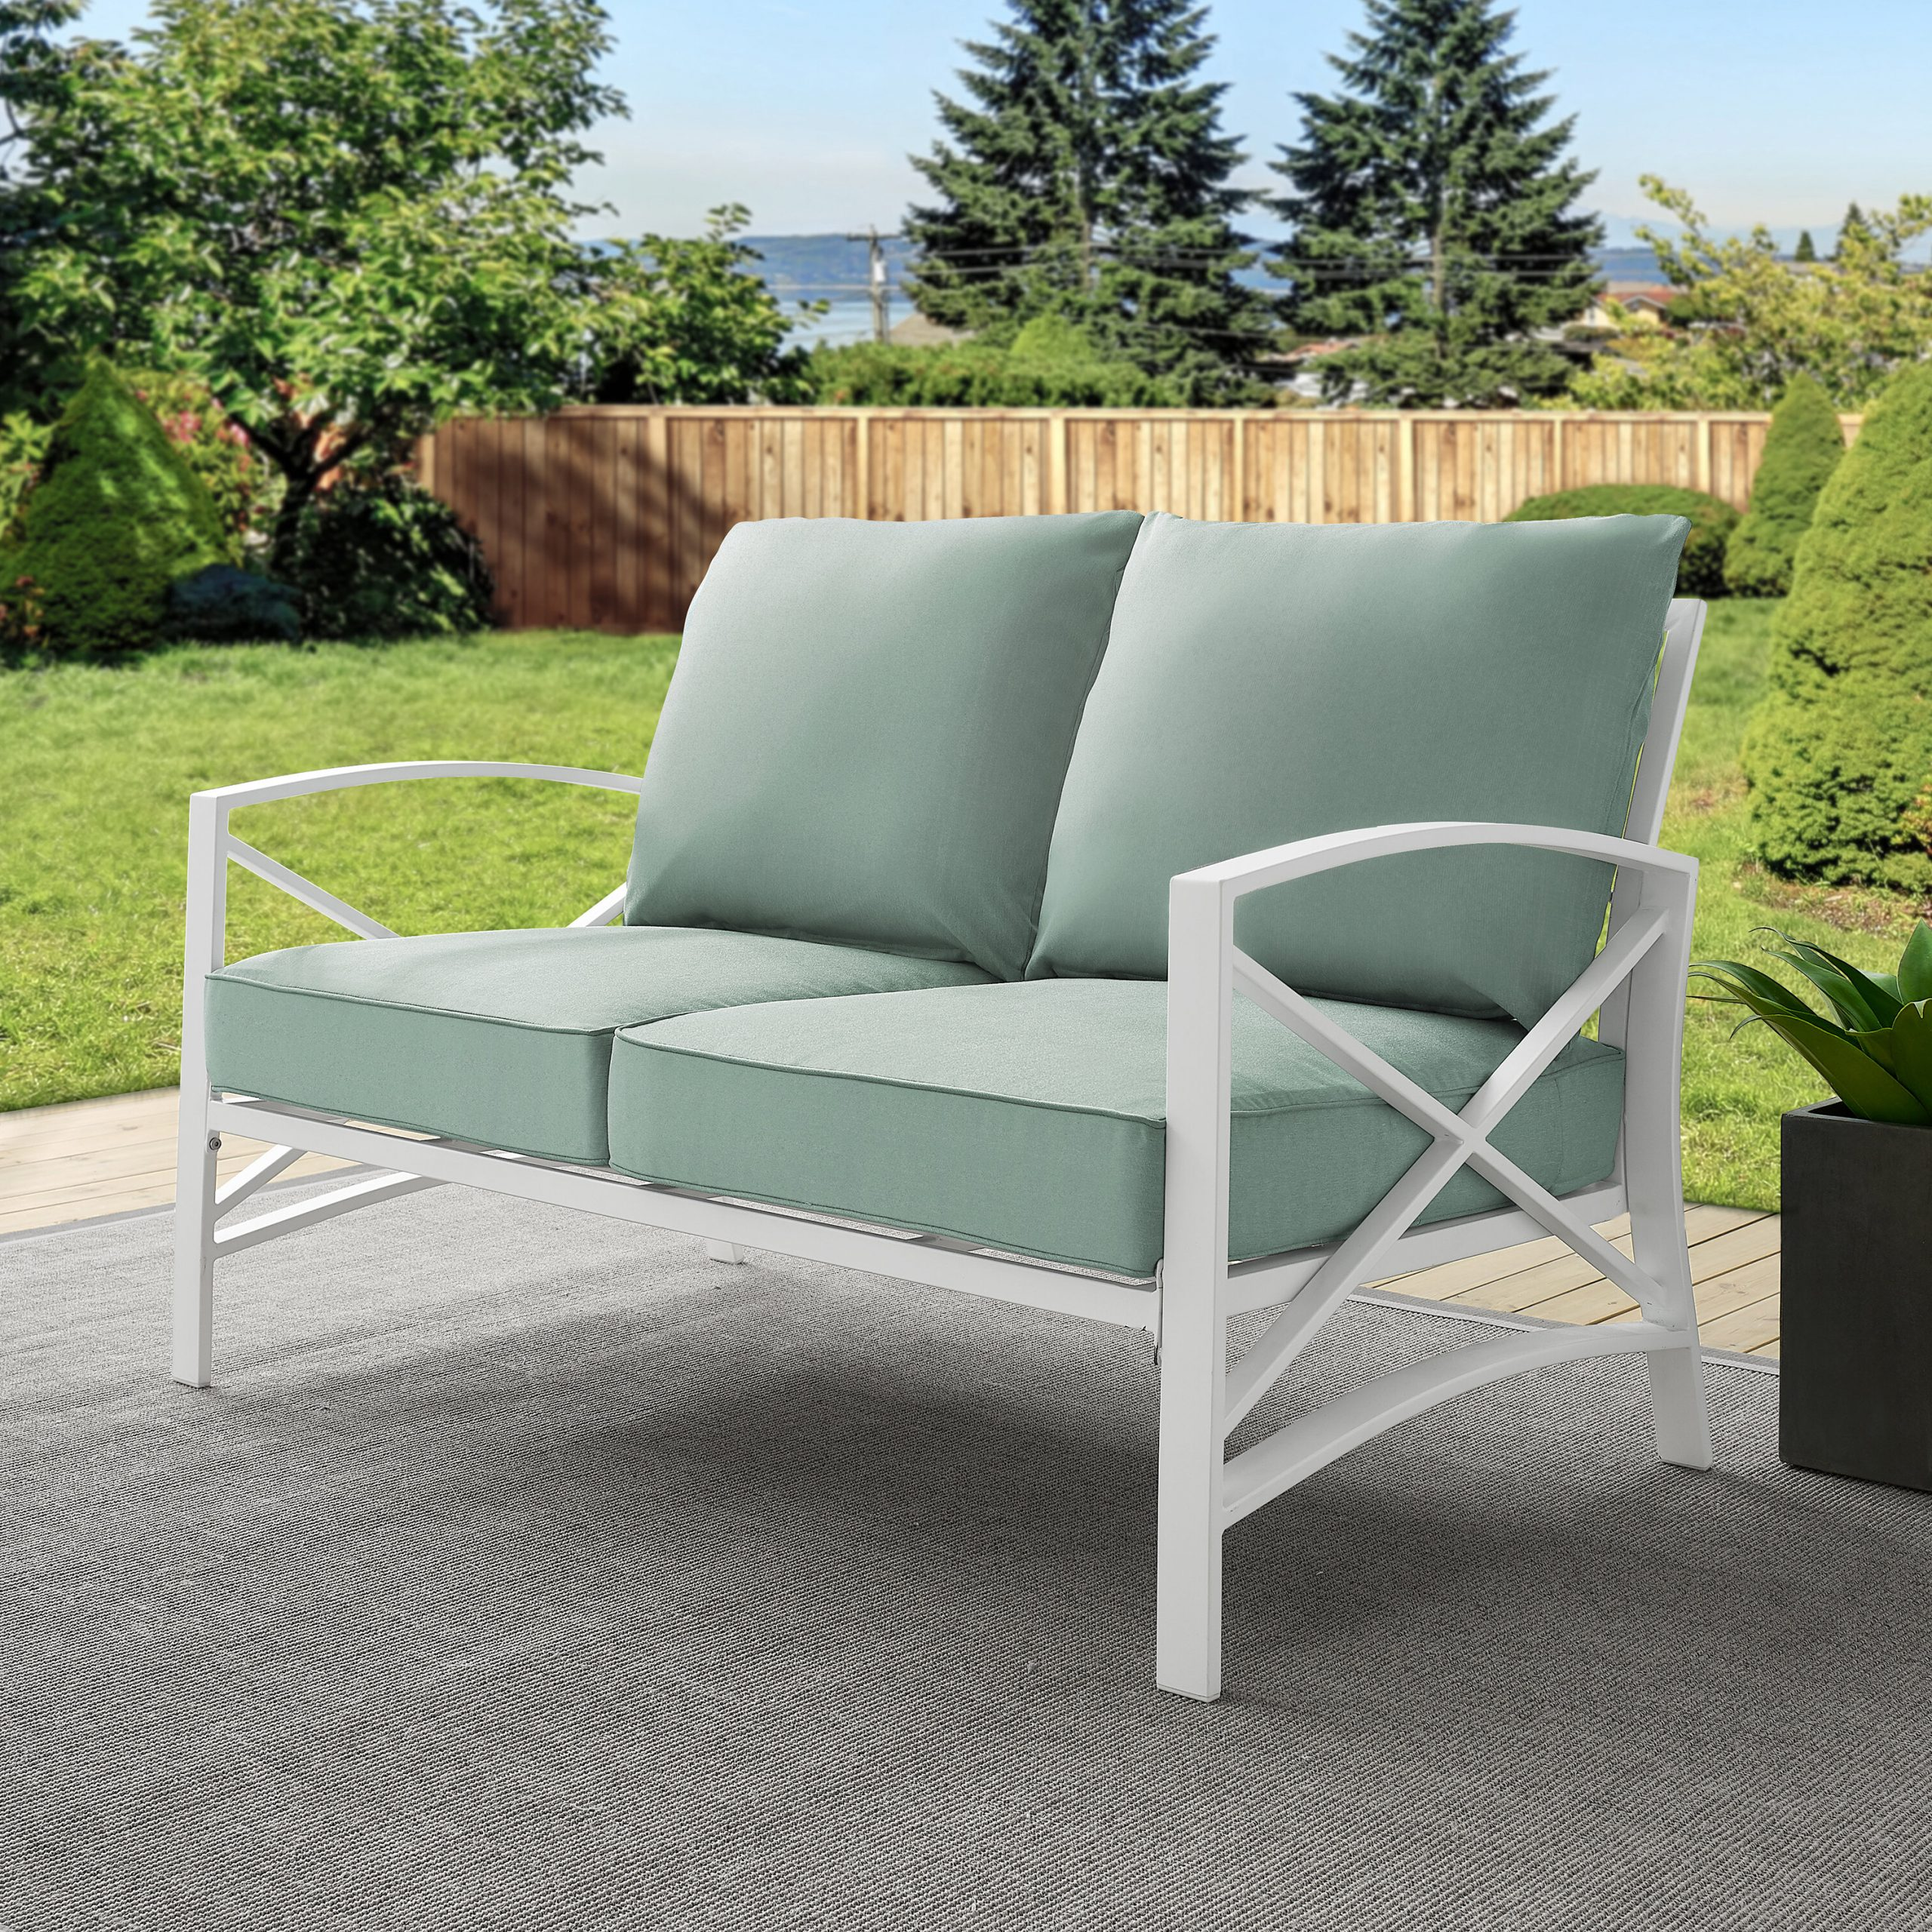 Freitag Loveseat With Cushions With Regard To Recent Hagler Outdoor Loveseats With Cushions (View 10 of 25)